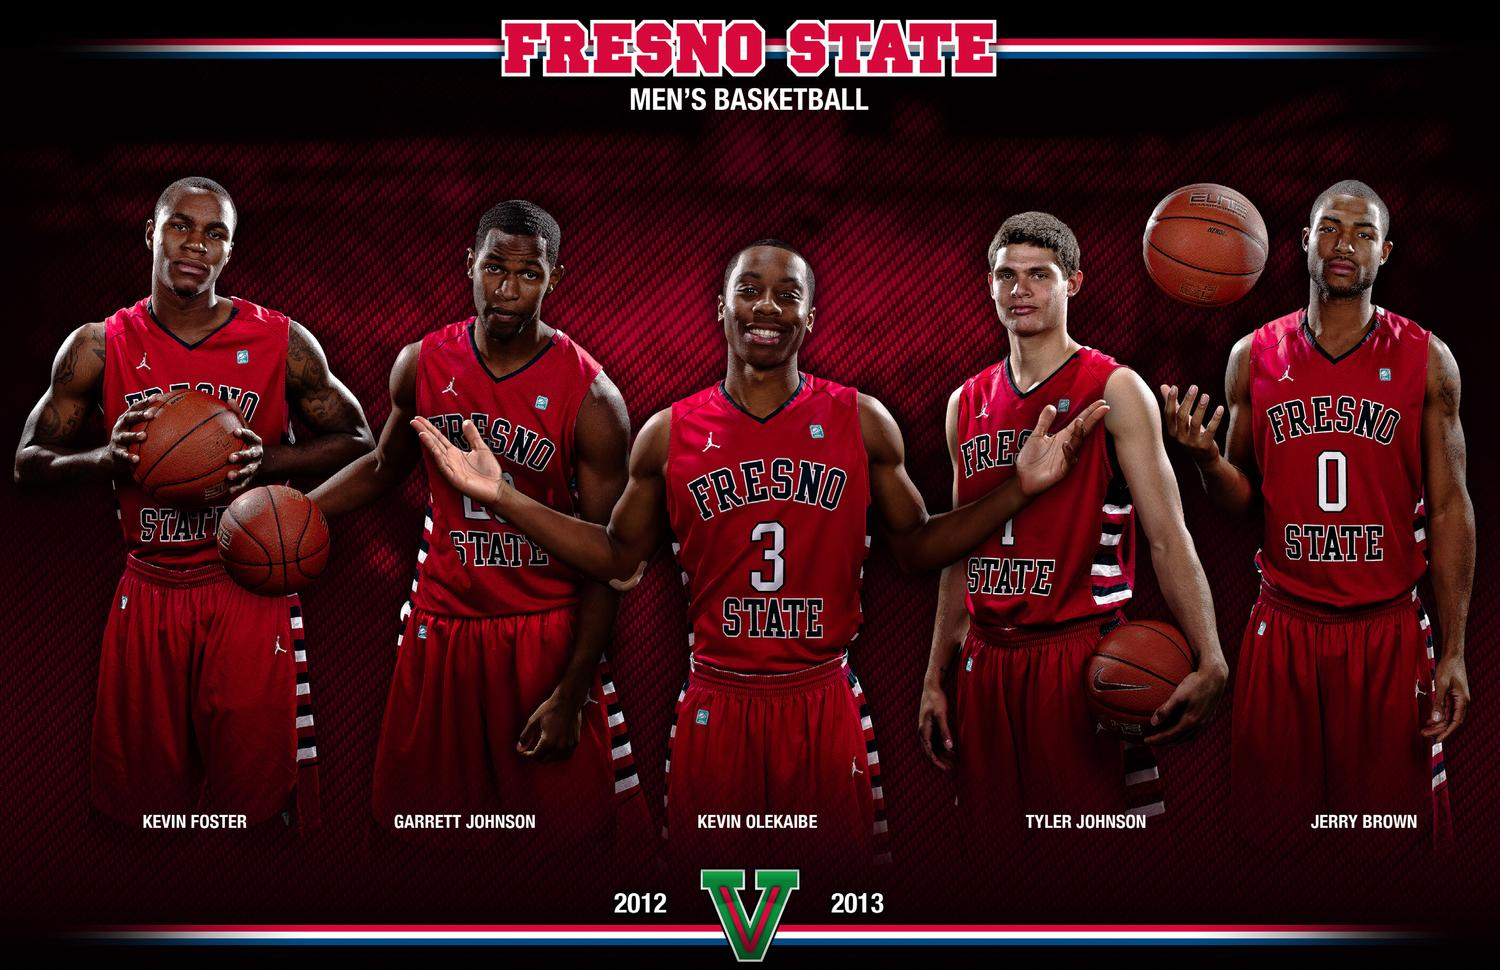 Defense remains strong in Fresno State Spring Preview